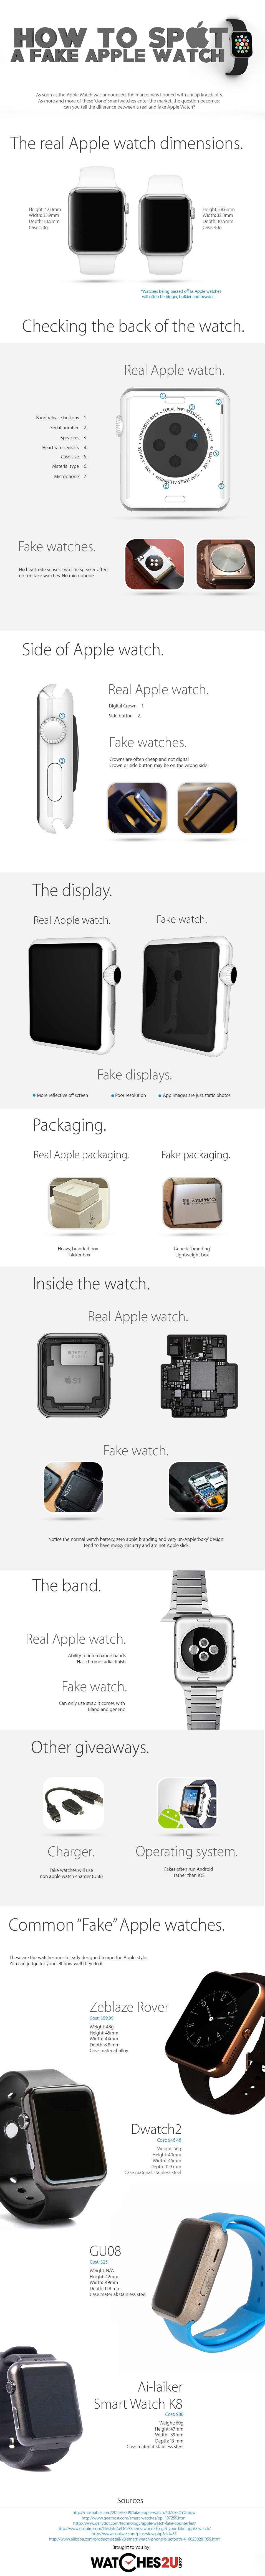 Spotting A Fake Apple Watch